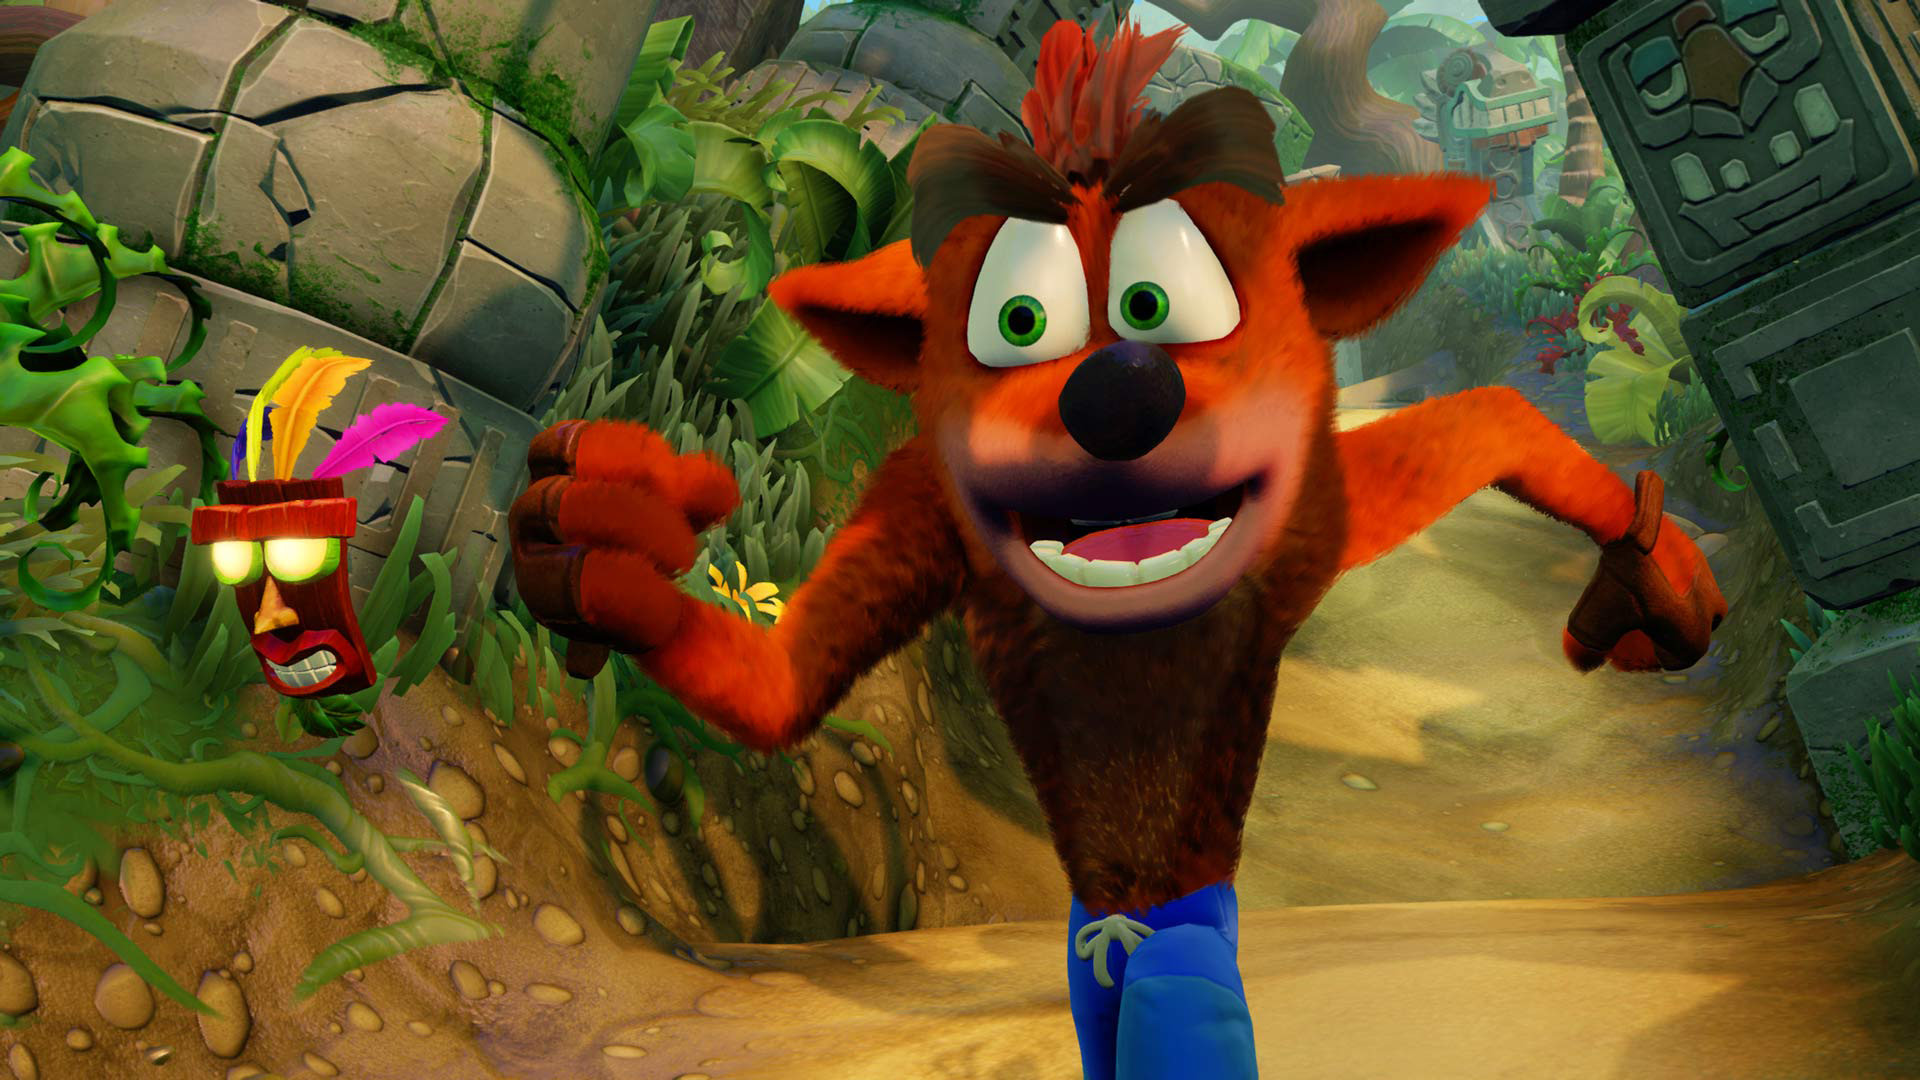 Crash Bandicoot Returns in Crash Bandicoot 4: It's About Time, Which Was Leaked By The Taiwan Ratings Board